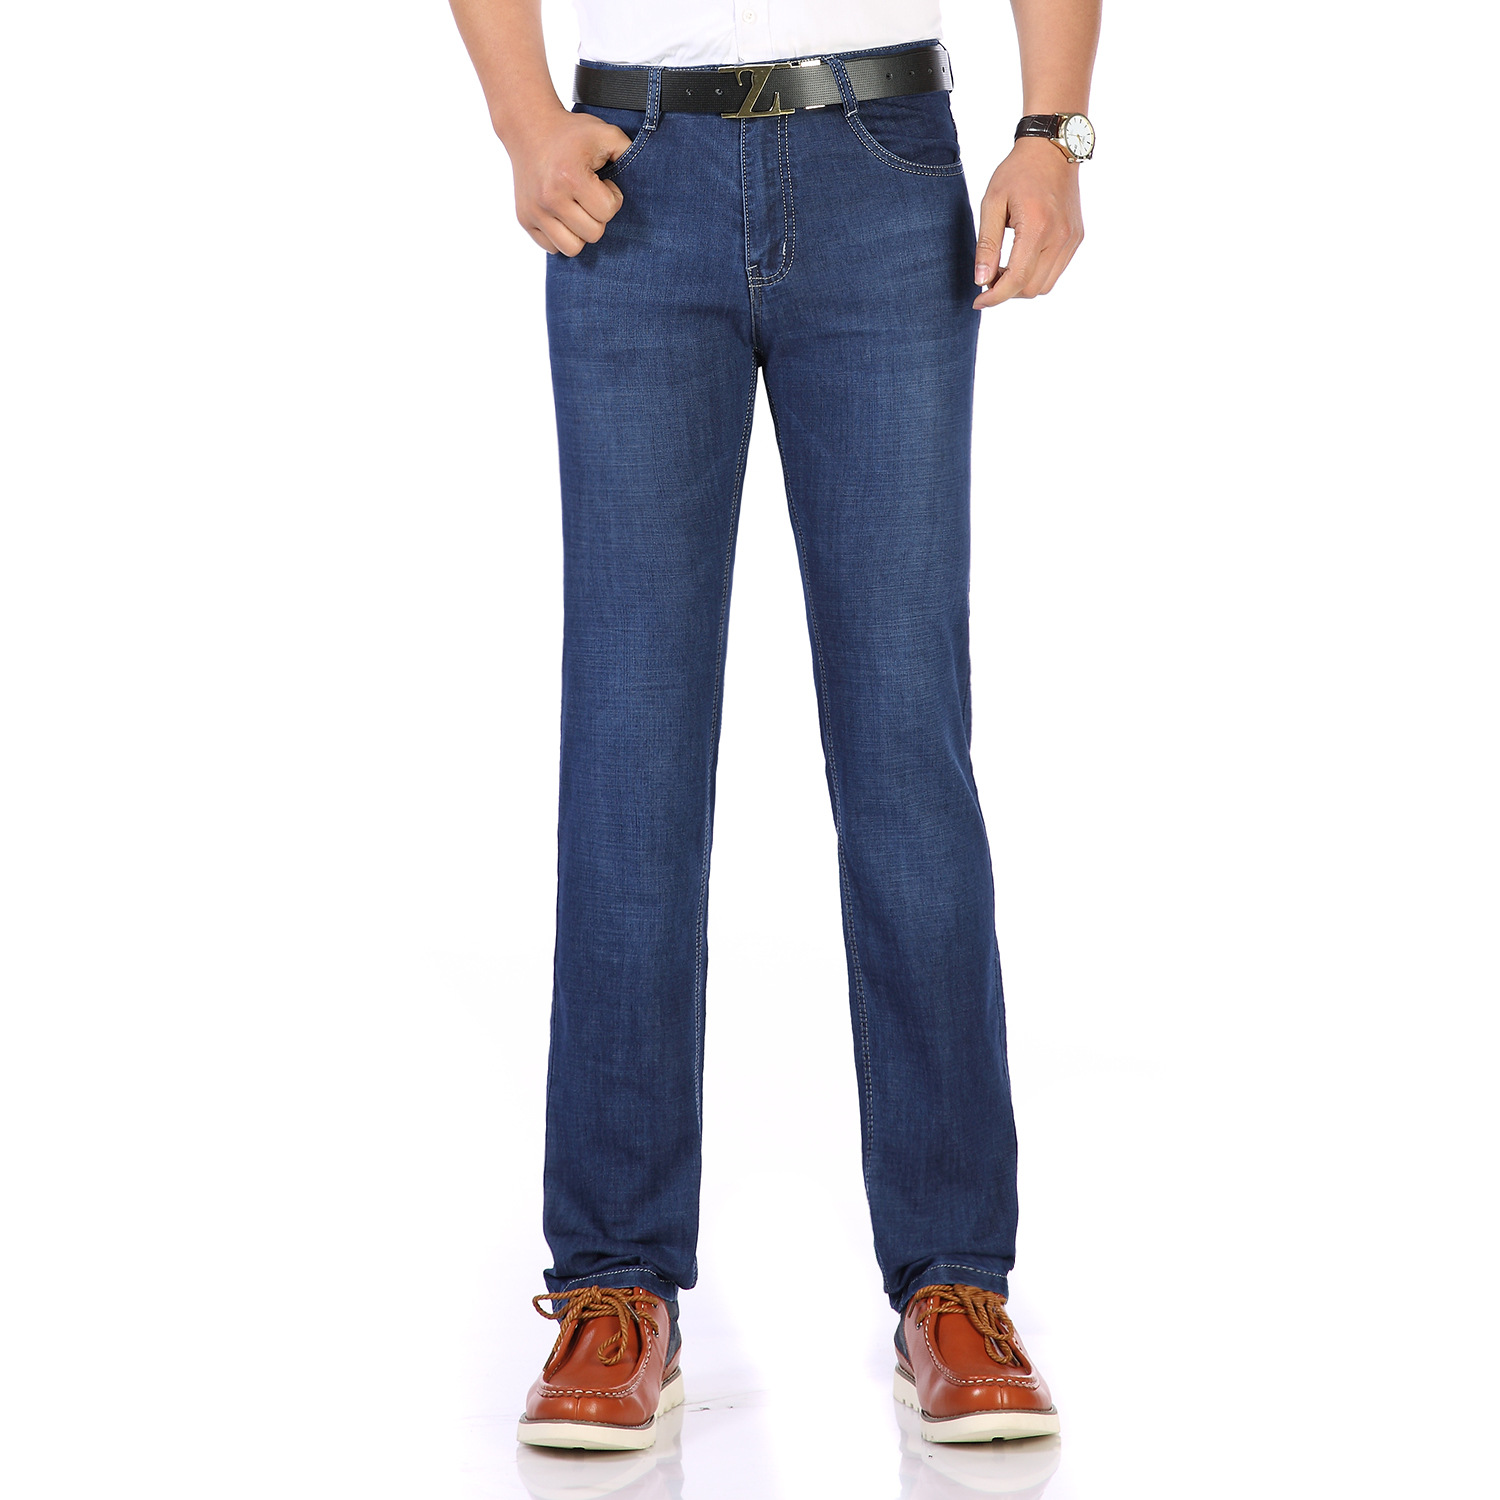 2018 Summer Wear Thin MEN'S Jeans High-waisted Straight-leg Pants Loose Elasticity Shen Dang Middle-aged